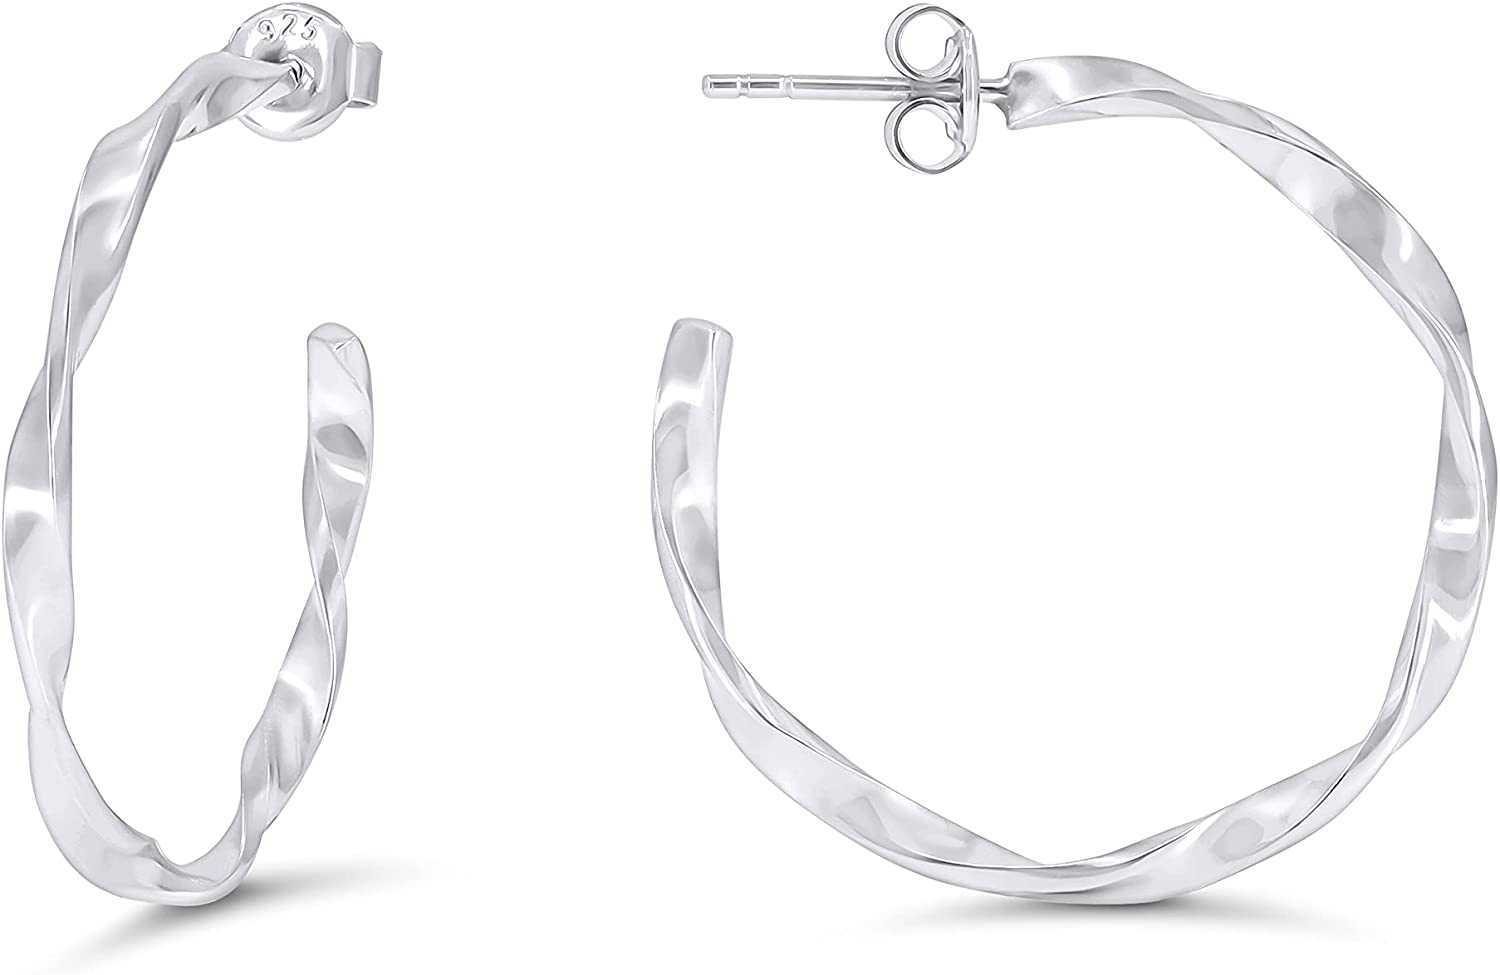 Popular brand in the world 925 Sterling Silver Max 66% OFF Twisted Hoop Earrings for Women Hypoallerge